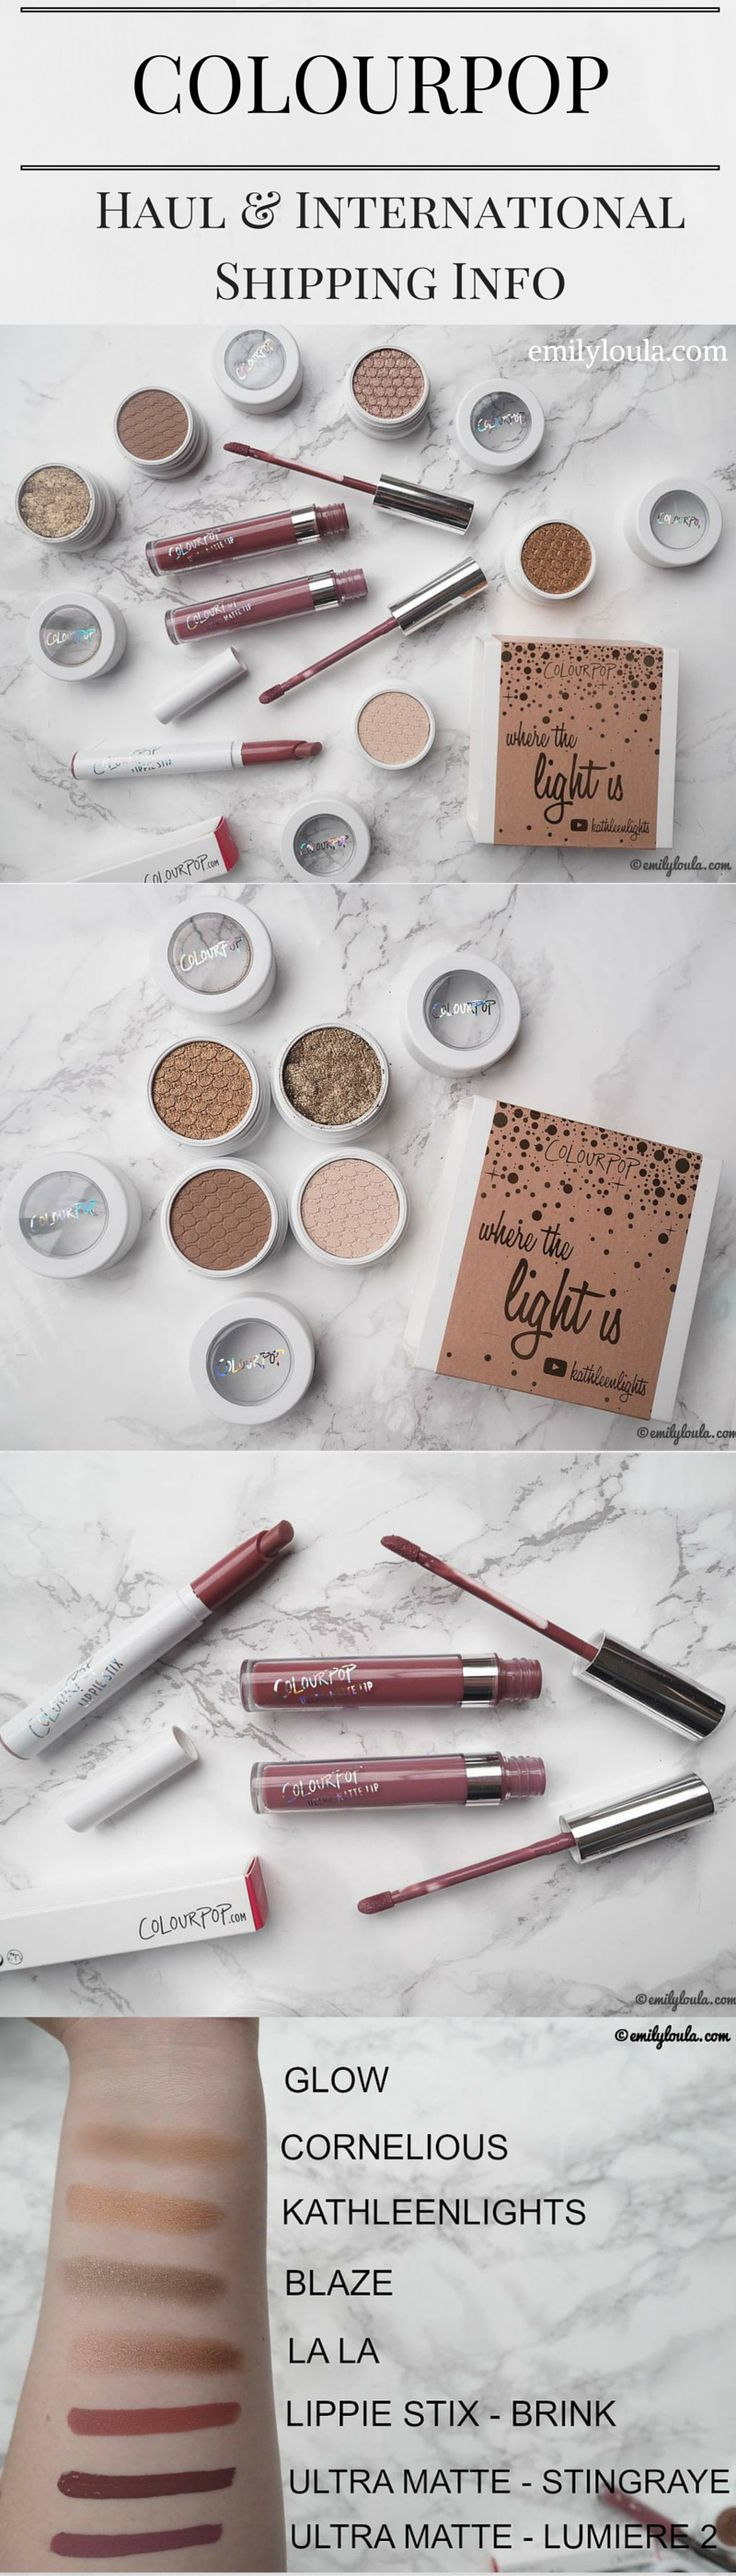 ColourPop haul, swatches and international shipping information - Ship ColourPop to the UK! Find out how! Eyeshadows in KathleenLights, Blaze, Cornelius, Glow, La La. Ultra Matte Lipsticks in StingRAYE, Lumiere 2. Lippie Stix in Brink | emilyloula beauty blog